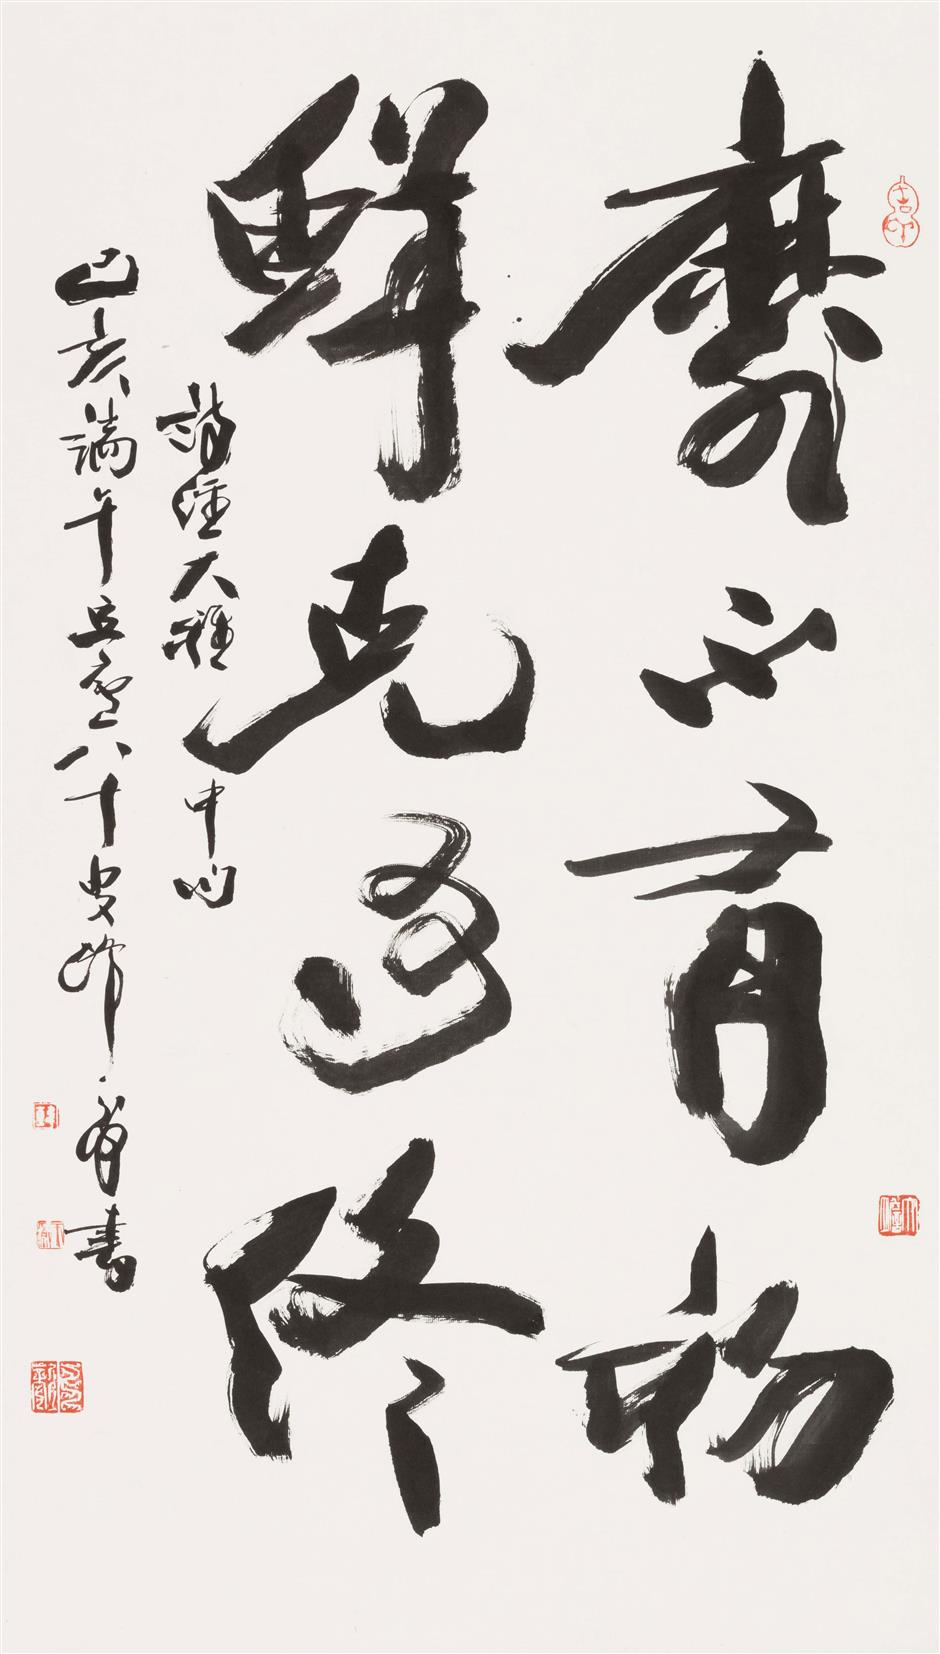 Poetic art of calligraphy is a silent reflection of the soul